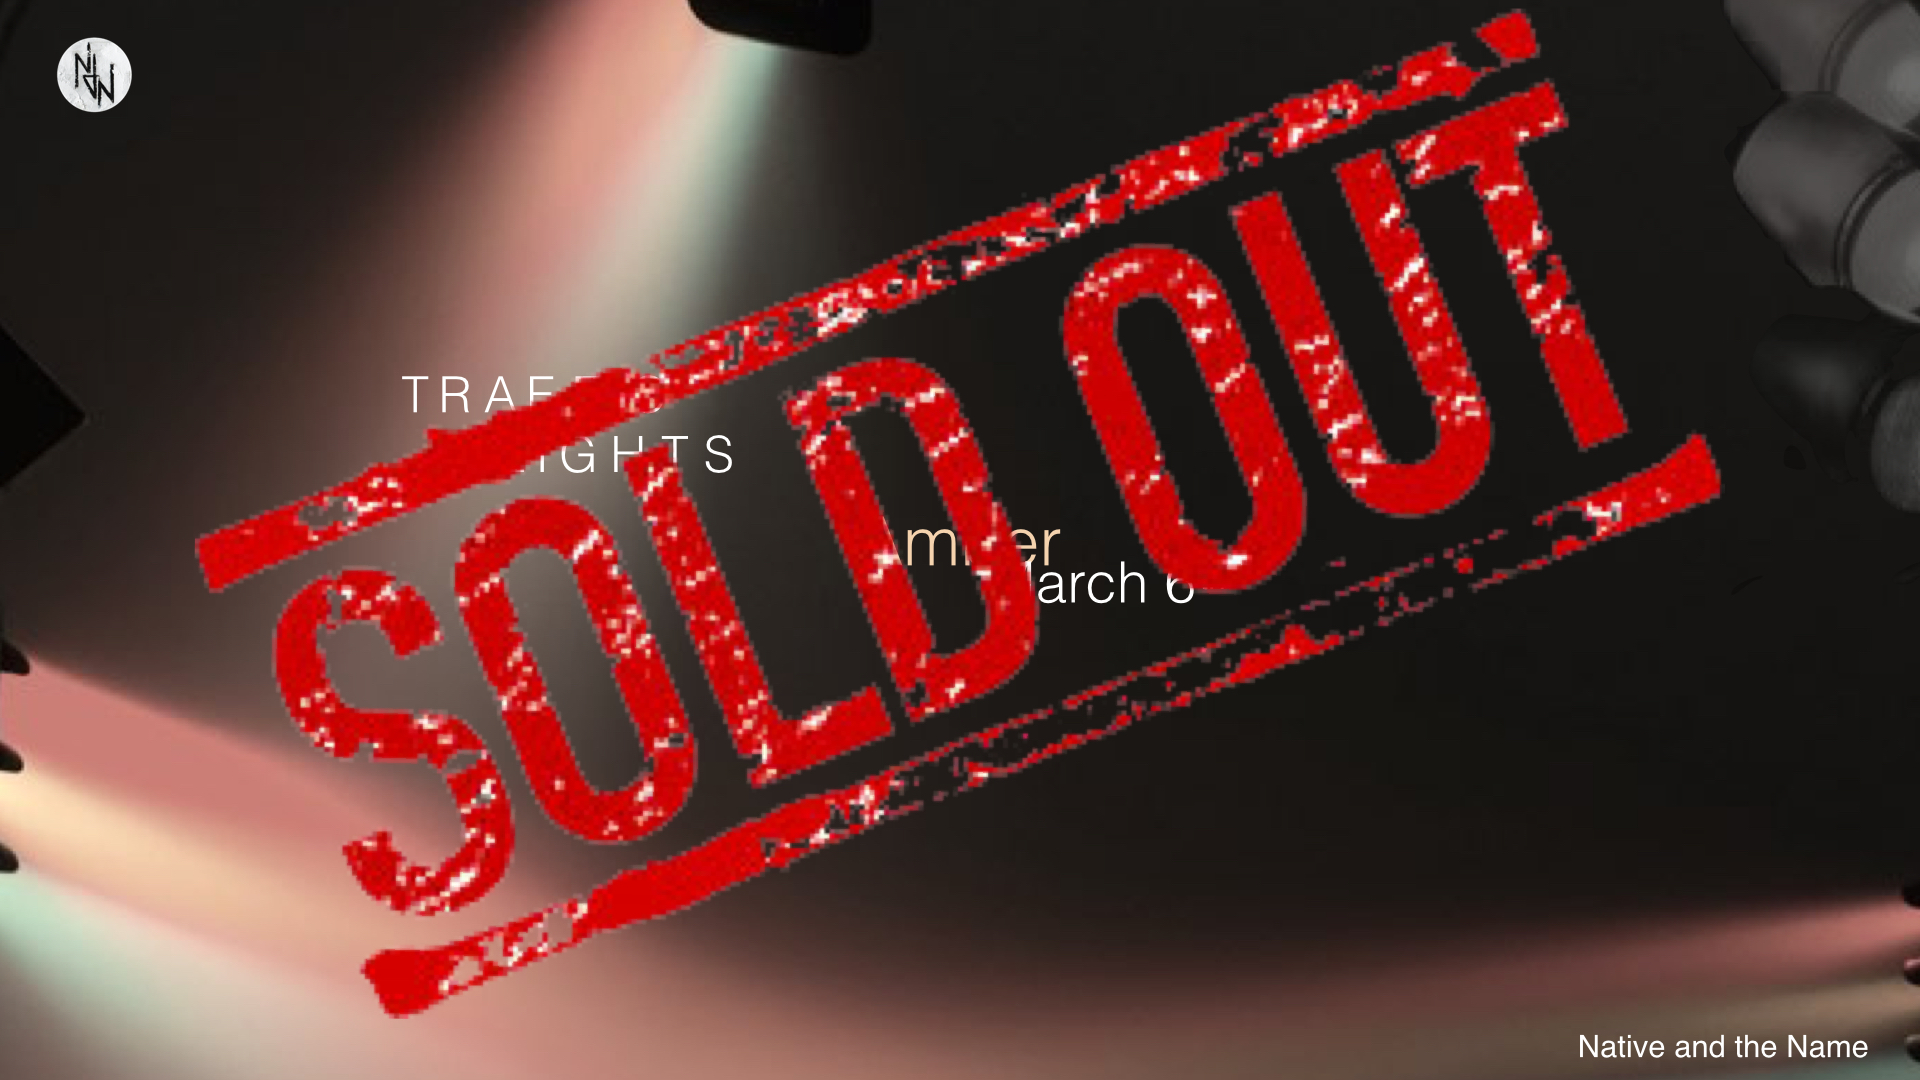 Amber March 6th 2015 Sold Out